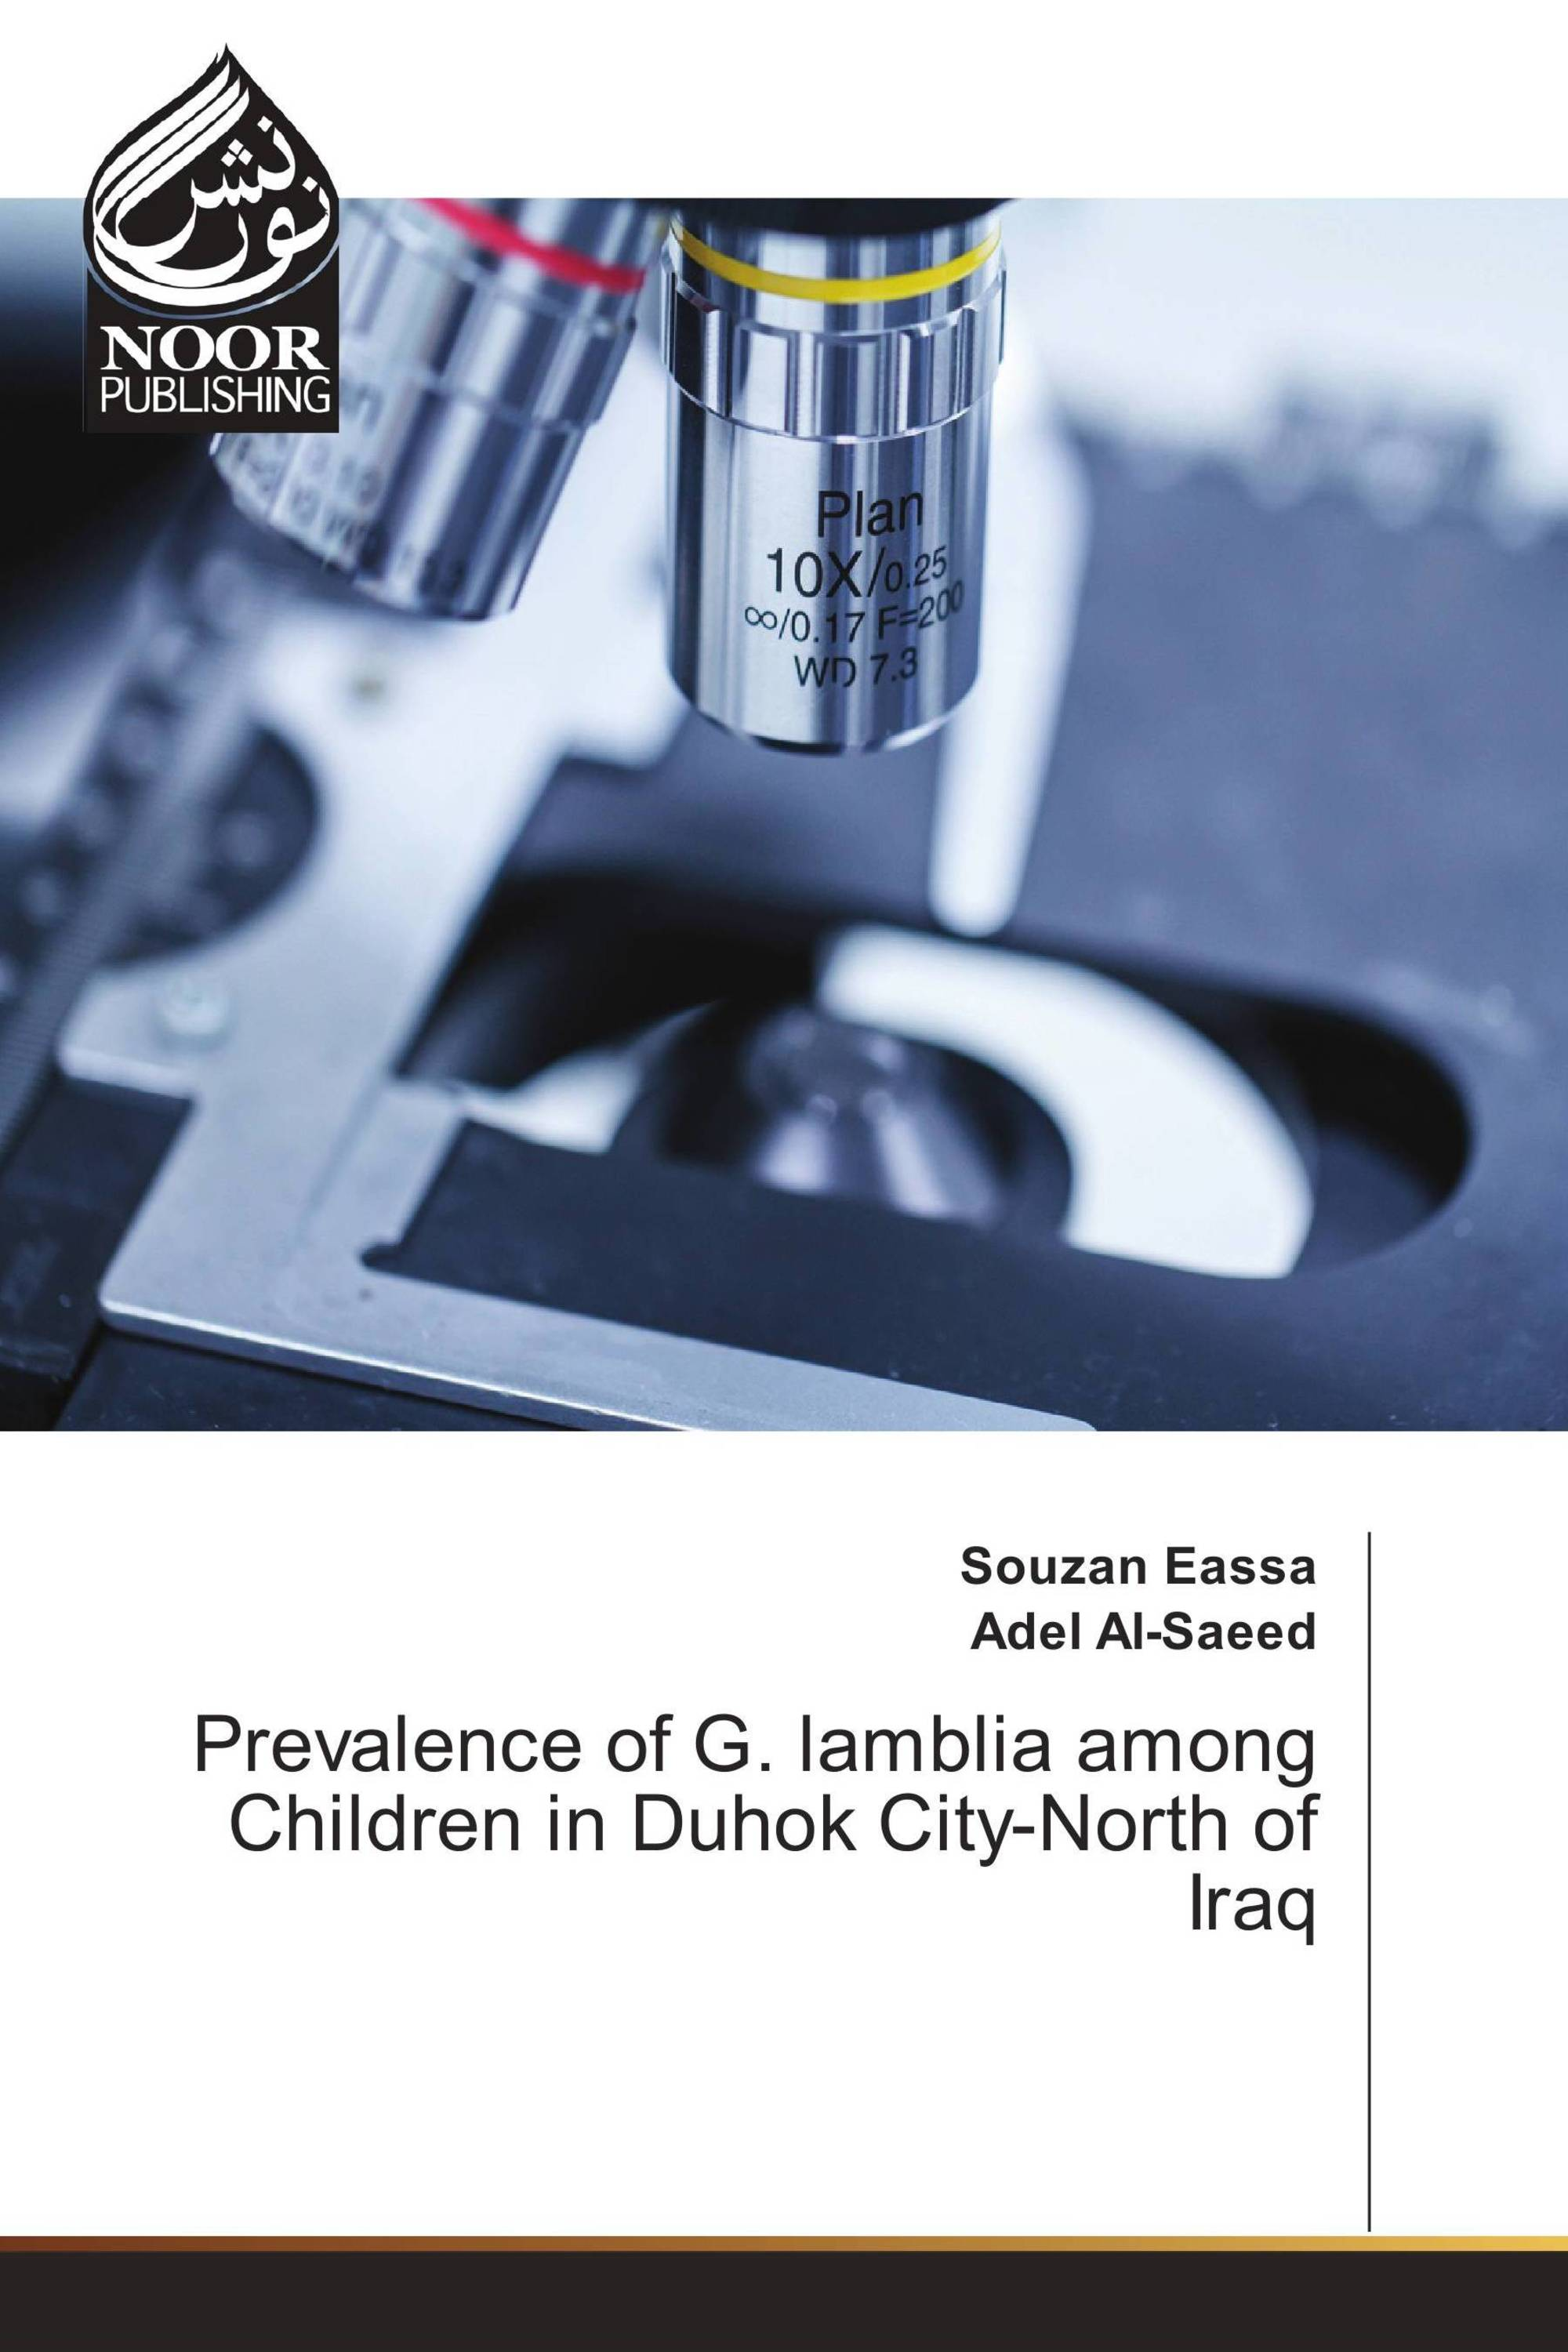 Prevalence of G. lamblia among Children in Duhok City-North of Iraq